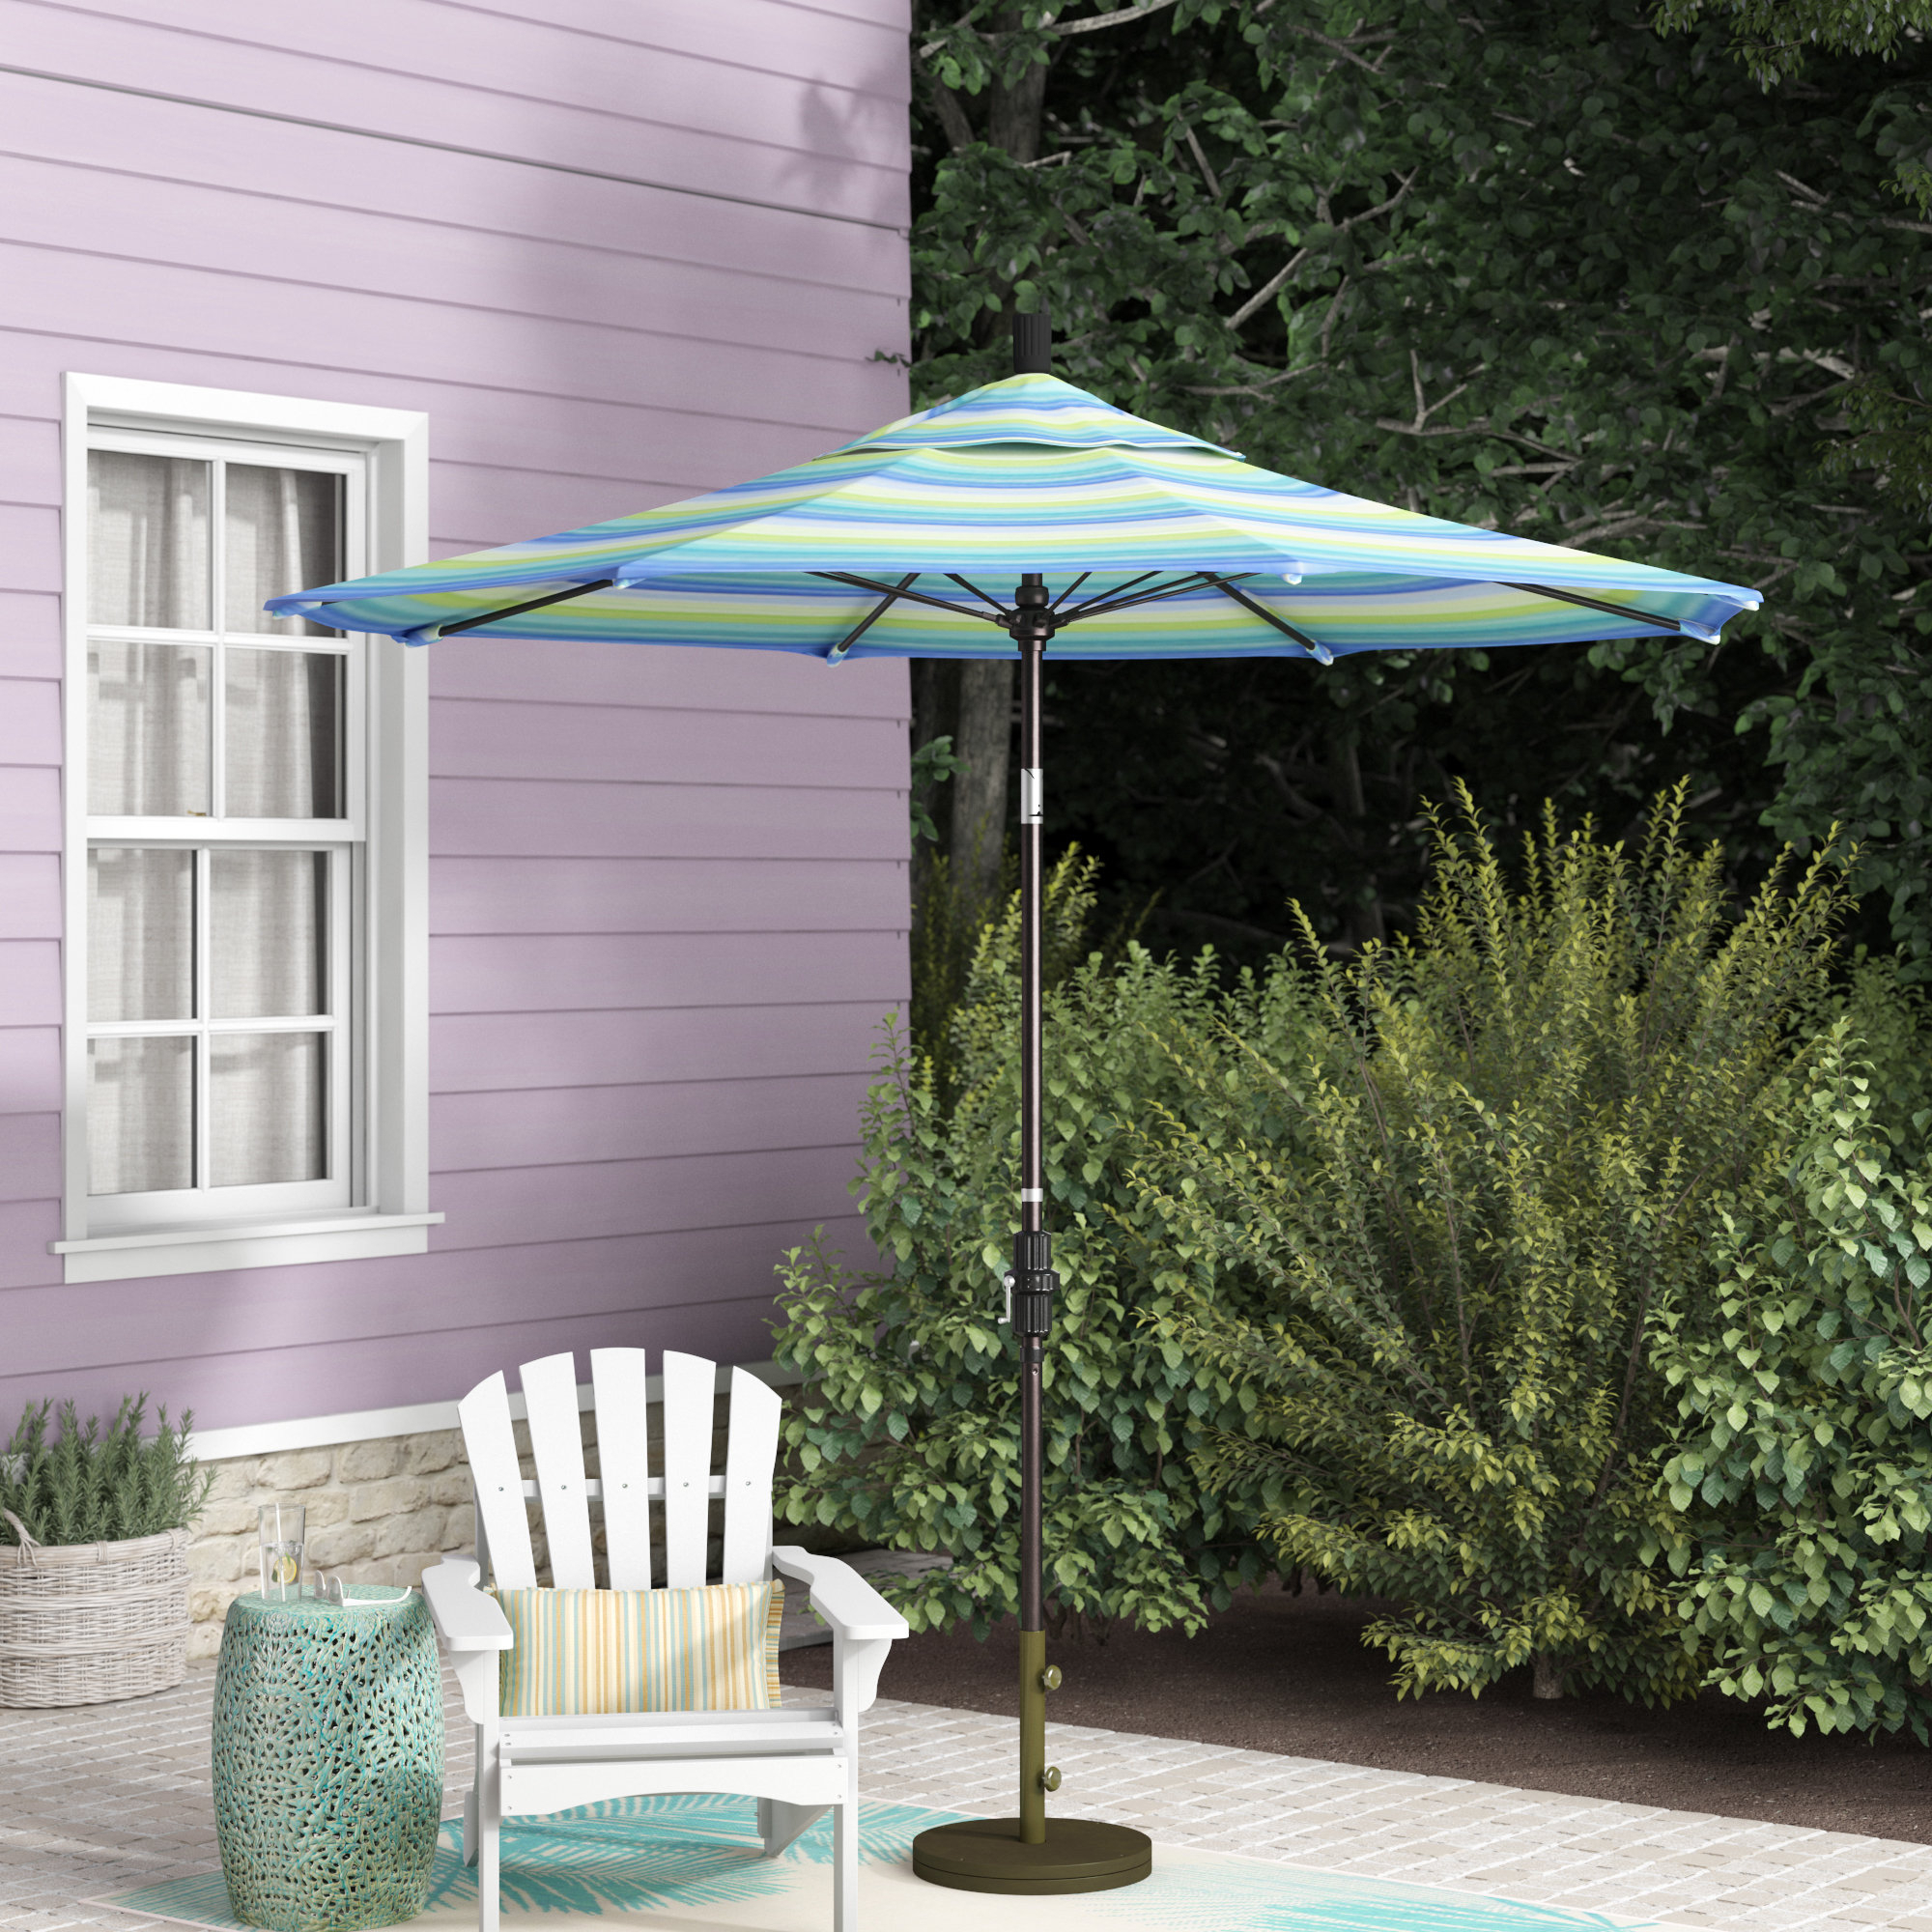 Wallach Market Sunbrella Umbrellas Intended For Most Recently Released Muldoon (View 6 of 20)